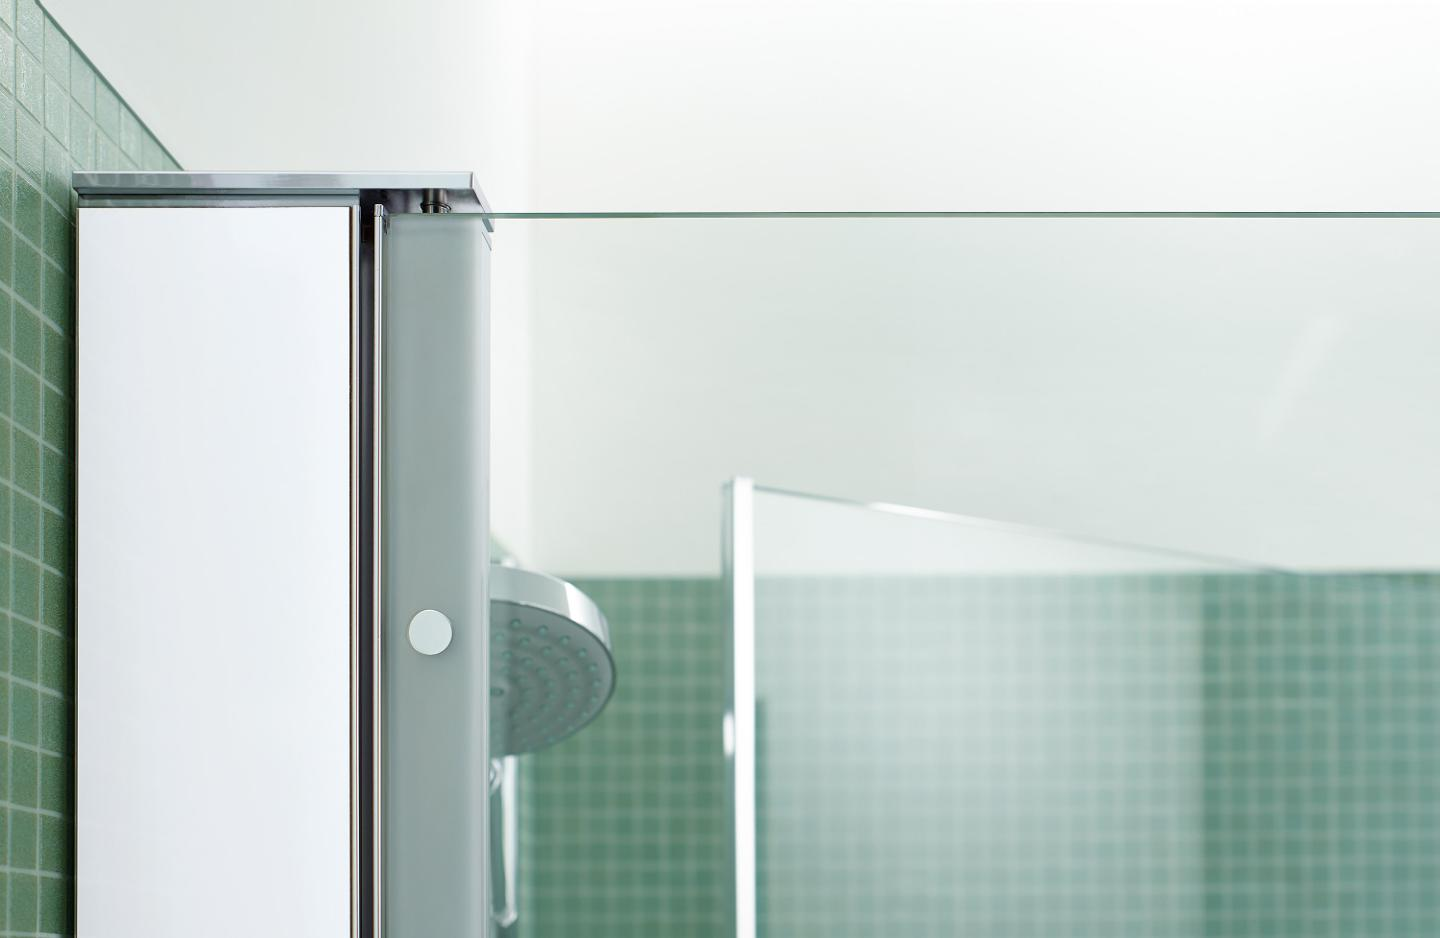 duravit openspace b modern glass shower enclosures duravit. Black Bedroom Furniture Sets. Home Design Ideas